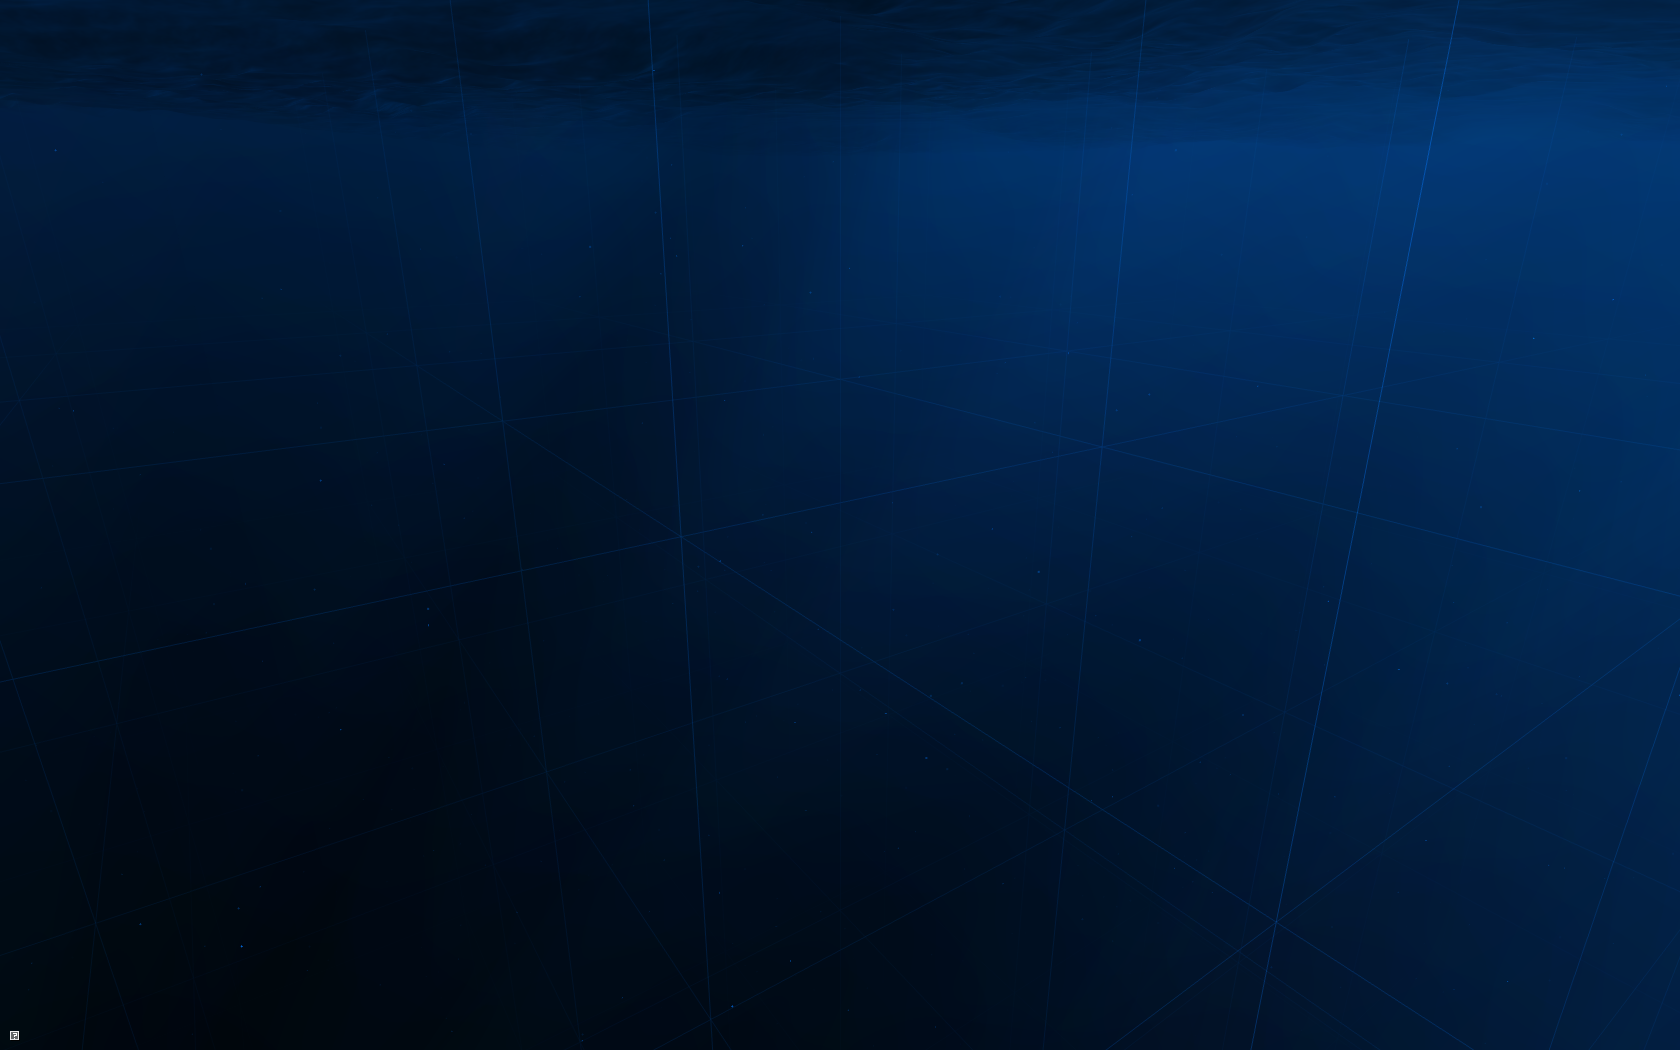 Dark Blue Ocean Background | www.galleryhip.com - The ...